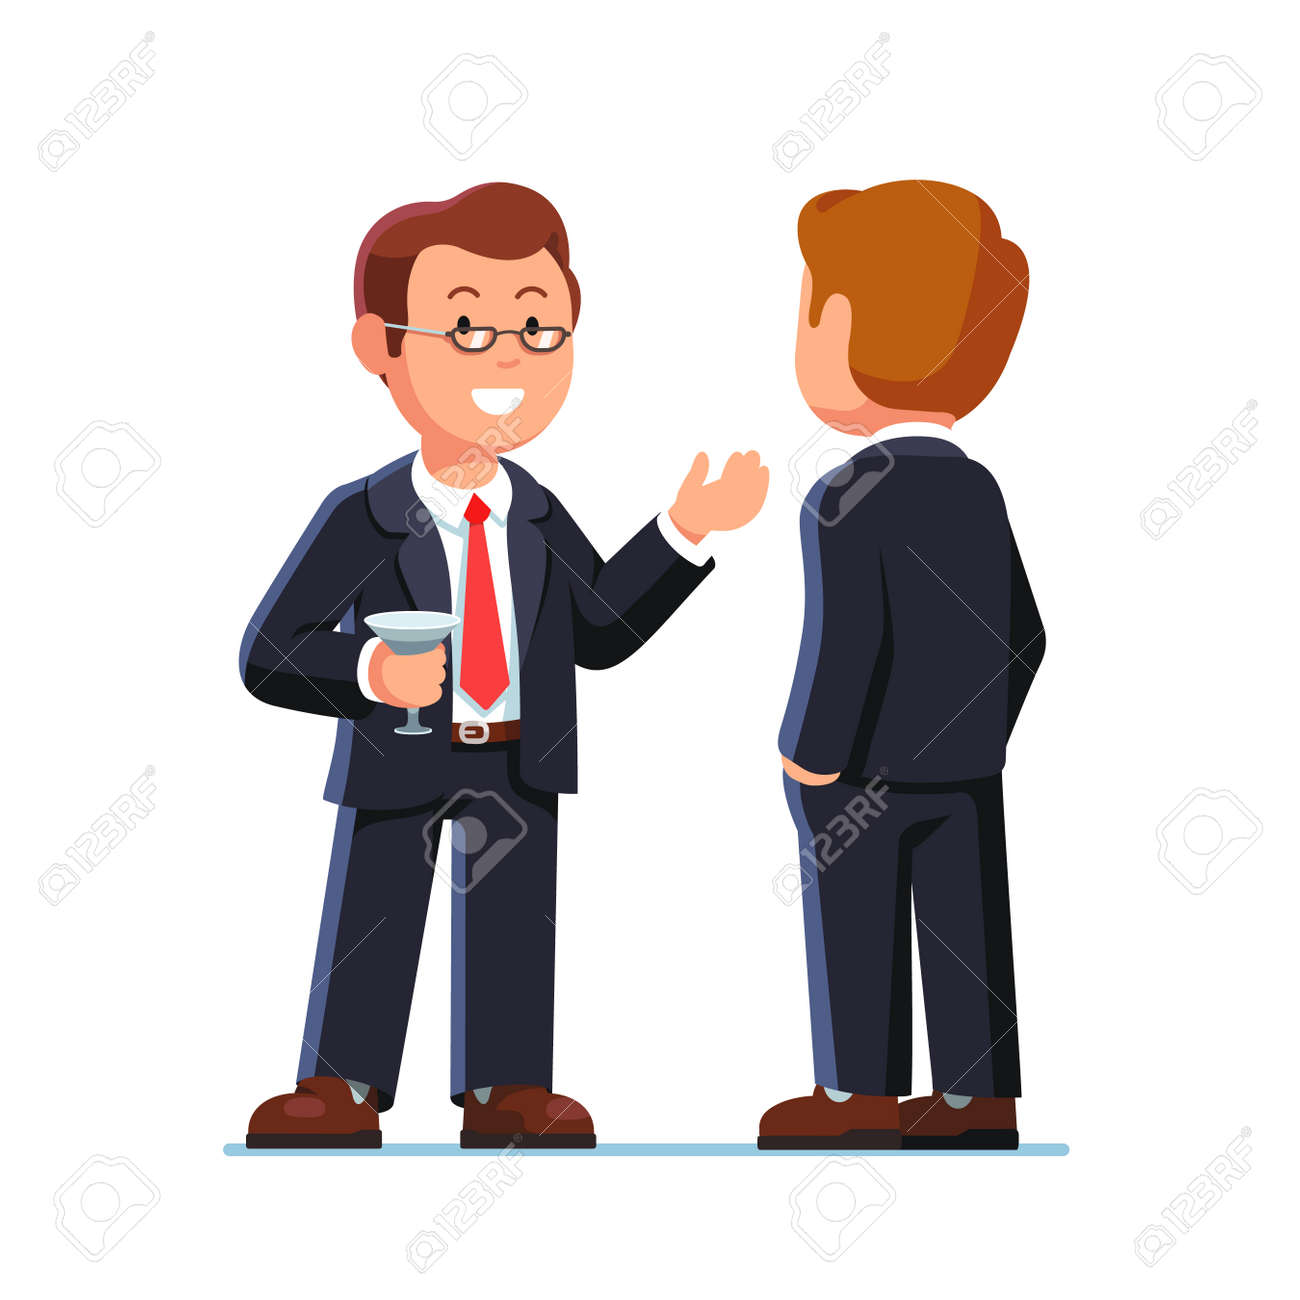 Business man executives talking and drinking at cocktail party or fundraiser event. Flat style vector illustration isolated on a white background. - 67658252